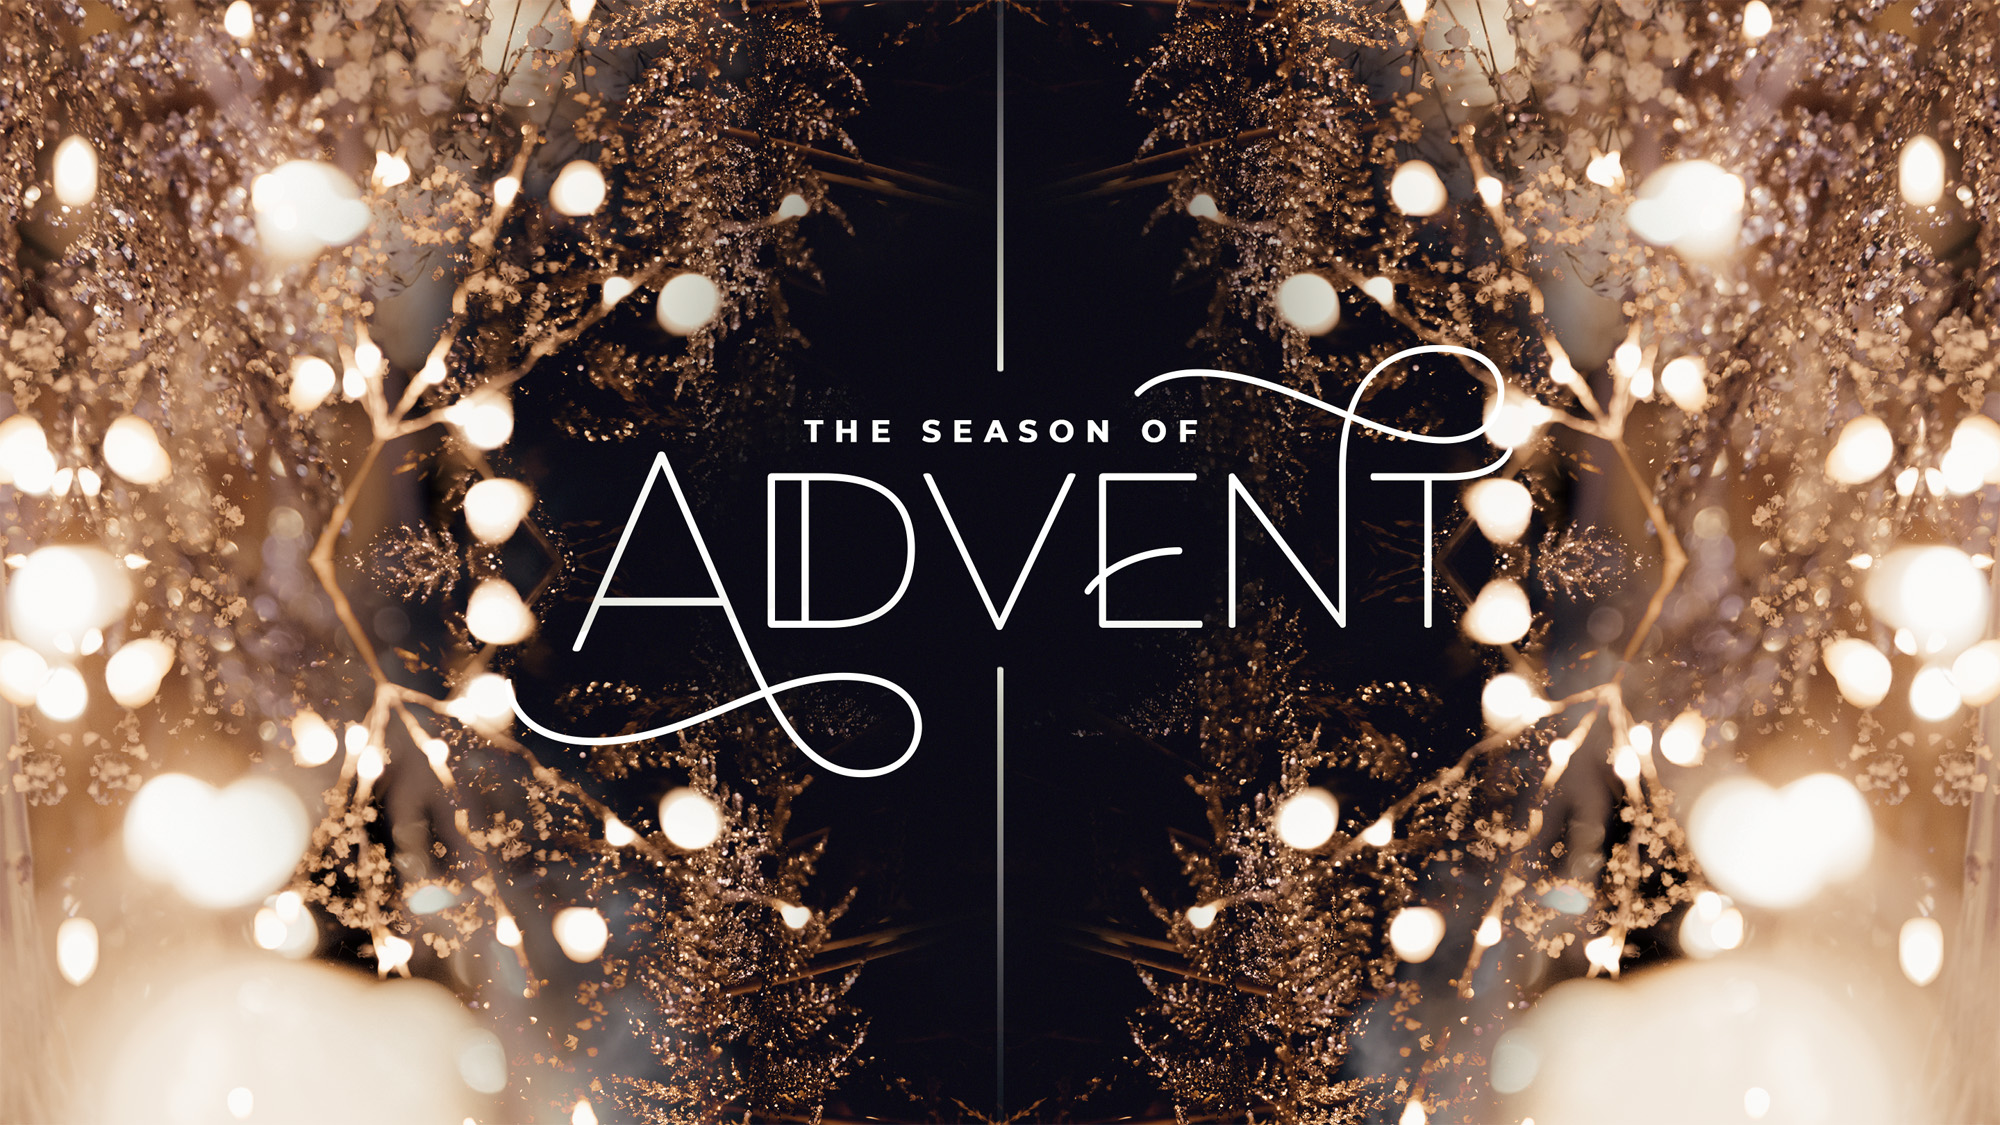 the_season_of_advent-title-1-Wide 16x9